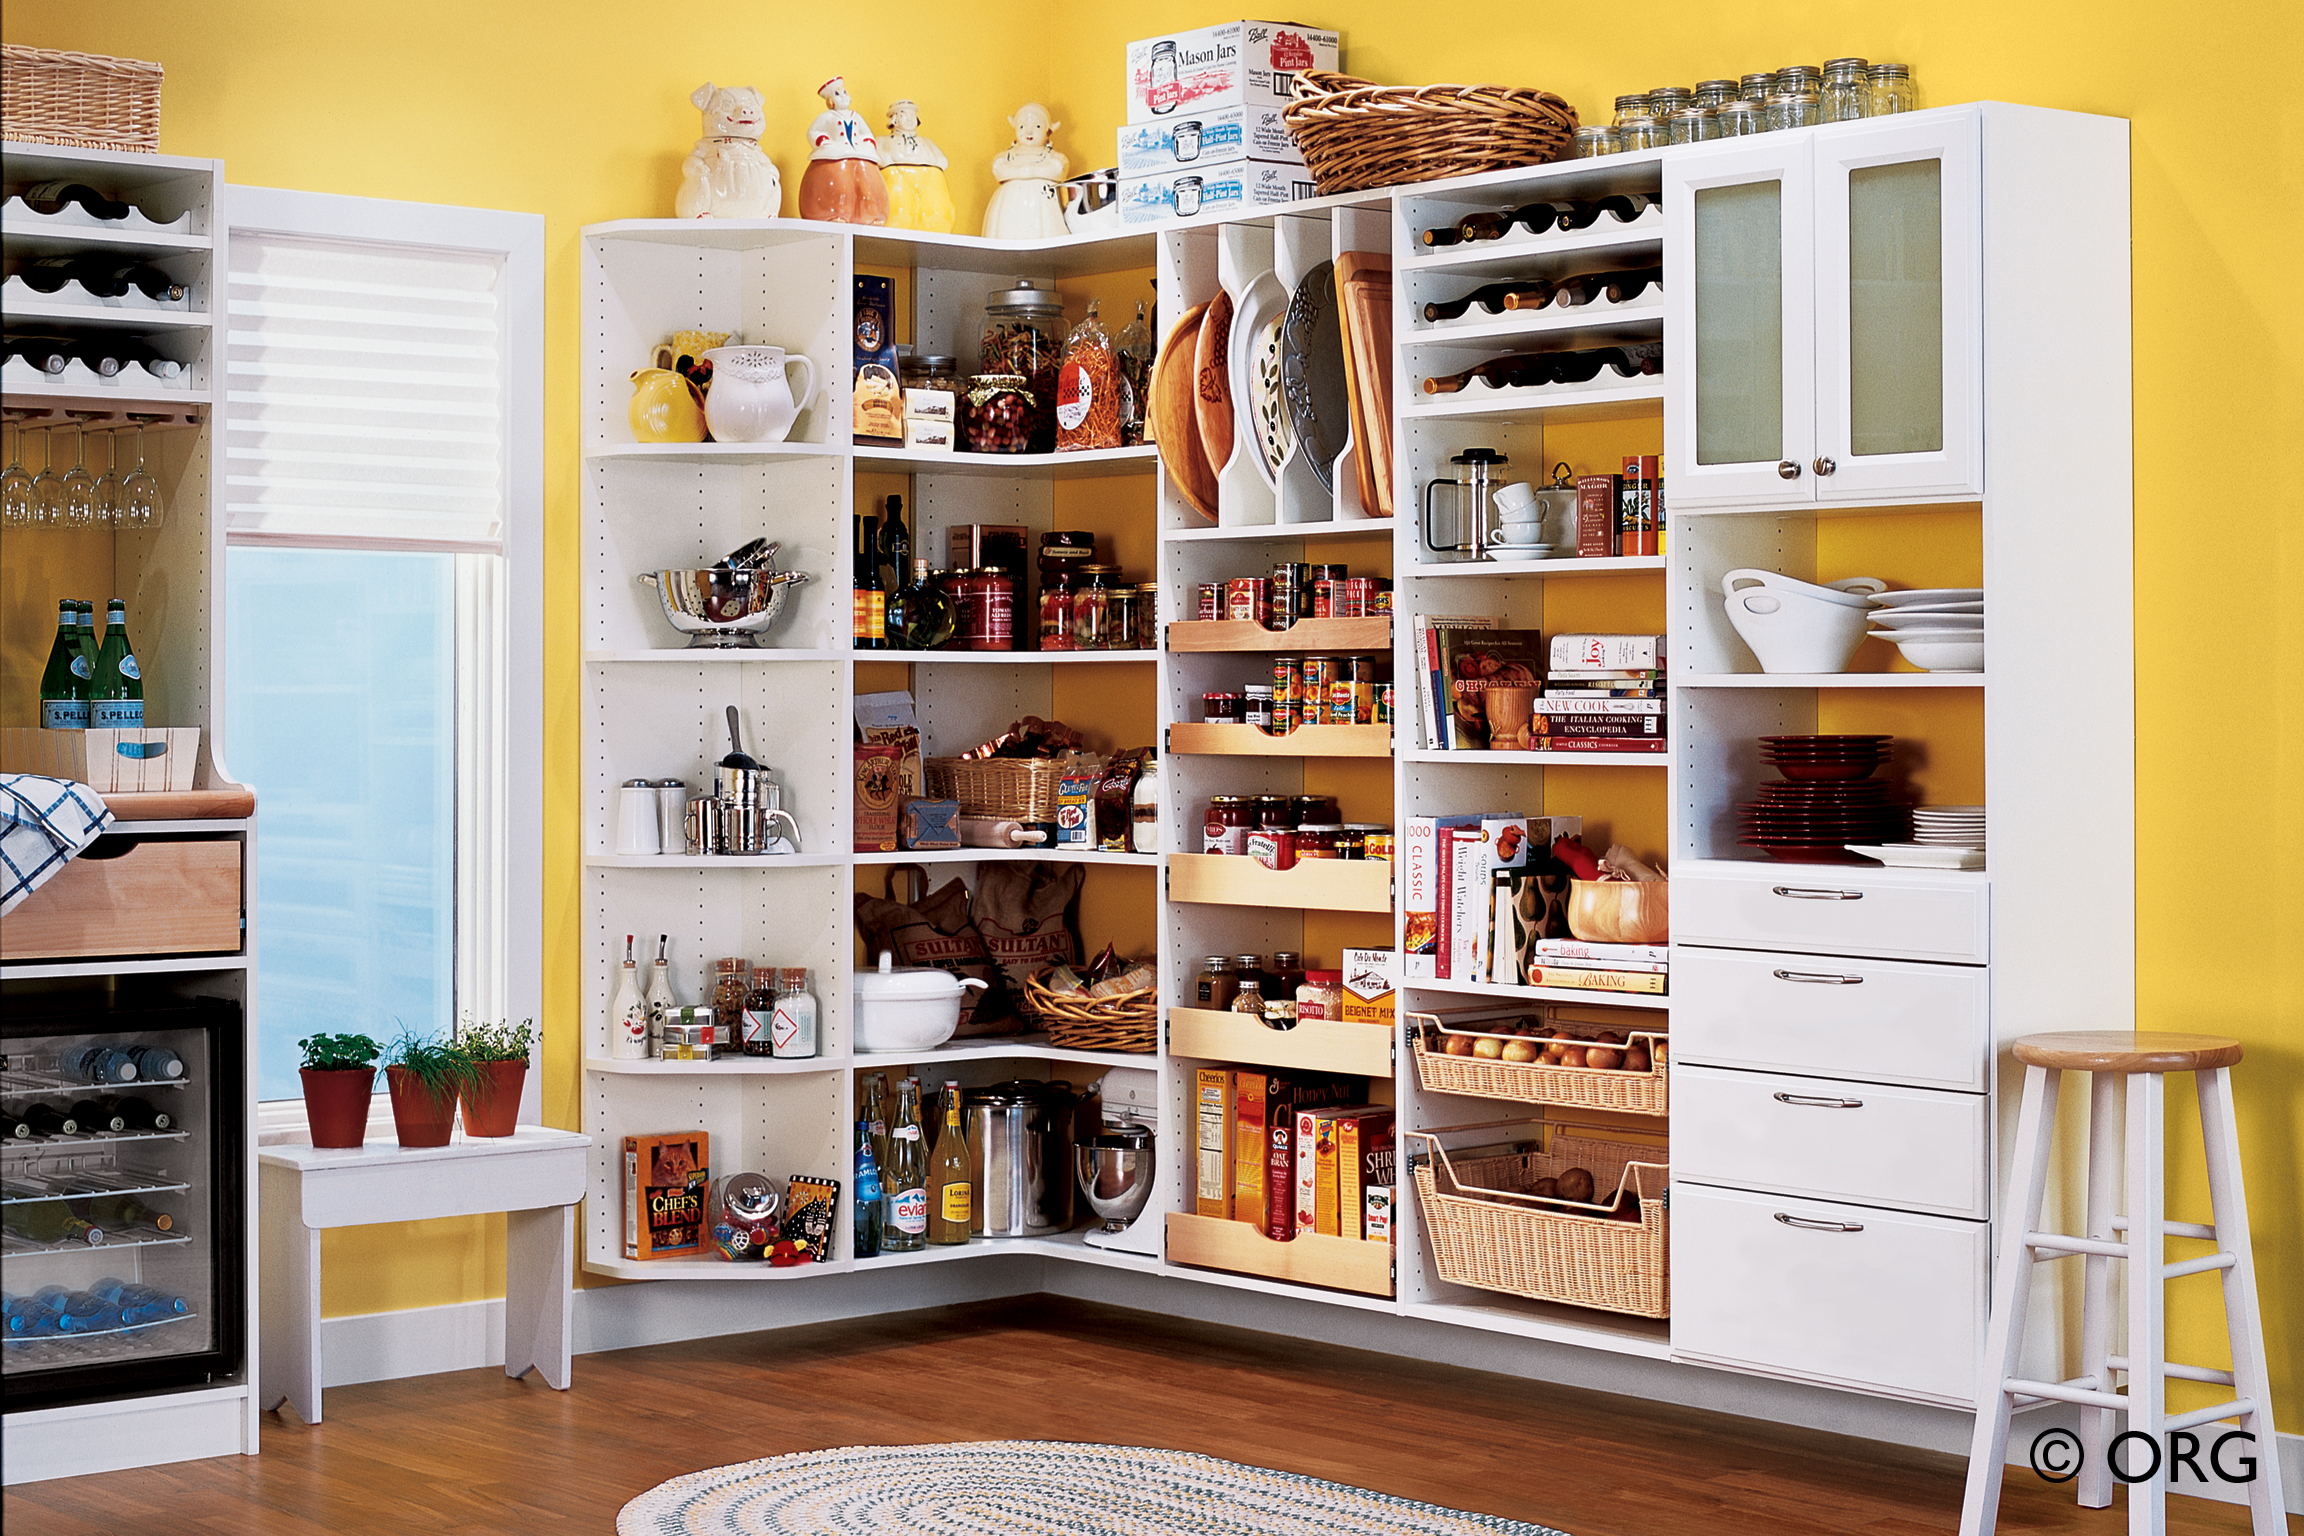 pantry storage cabinets for kitchen storage cabinets for kitchen Pantry storage cabinets for kitchen Photo 3